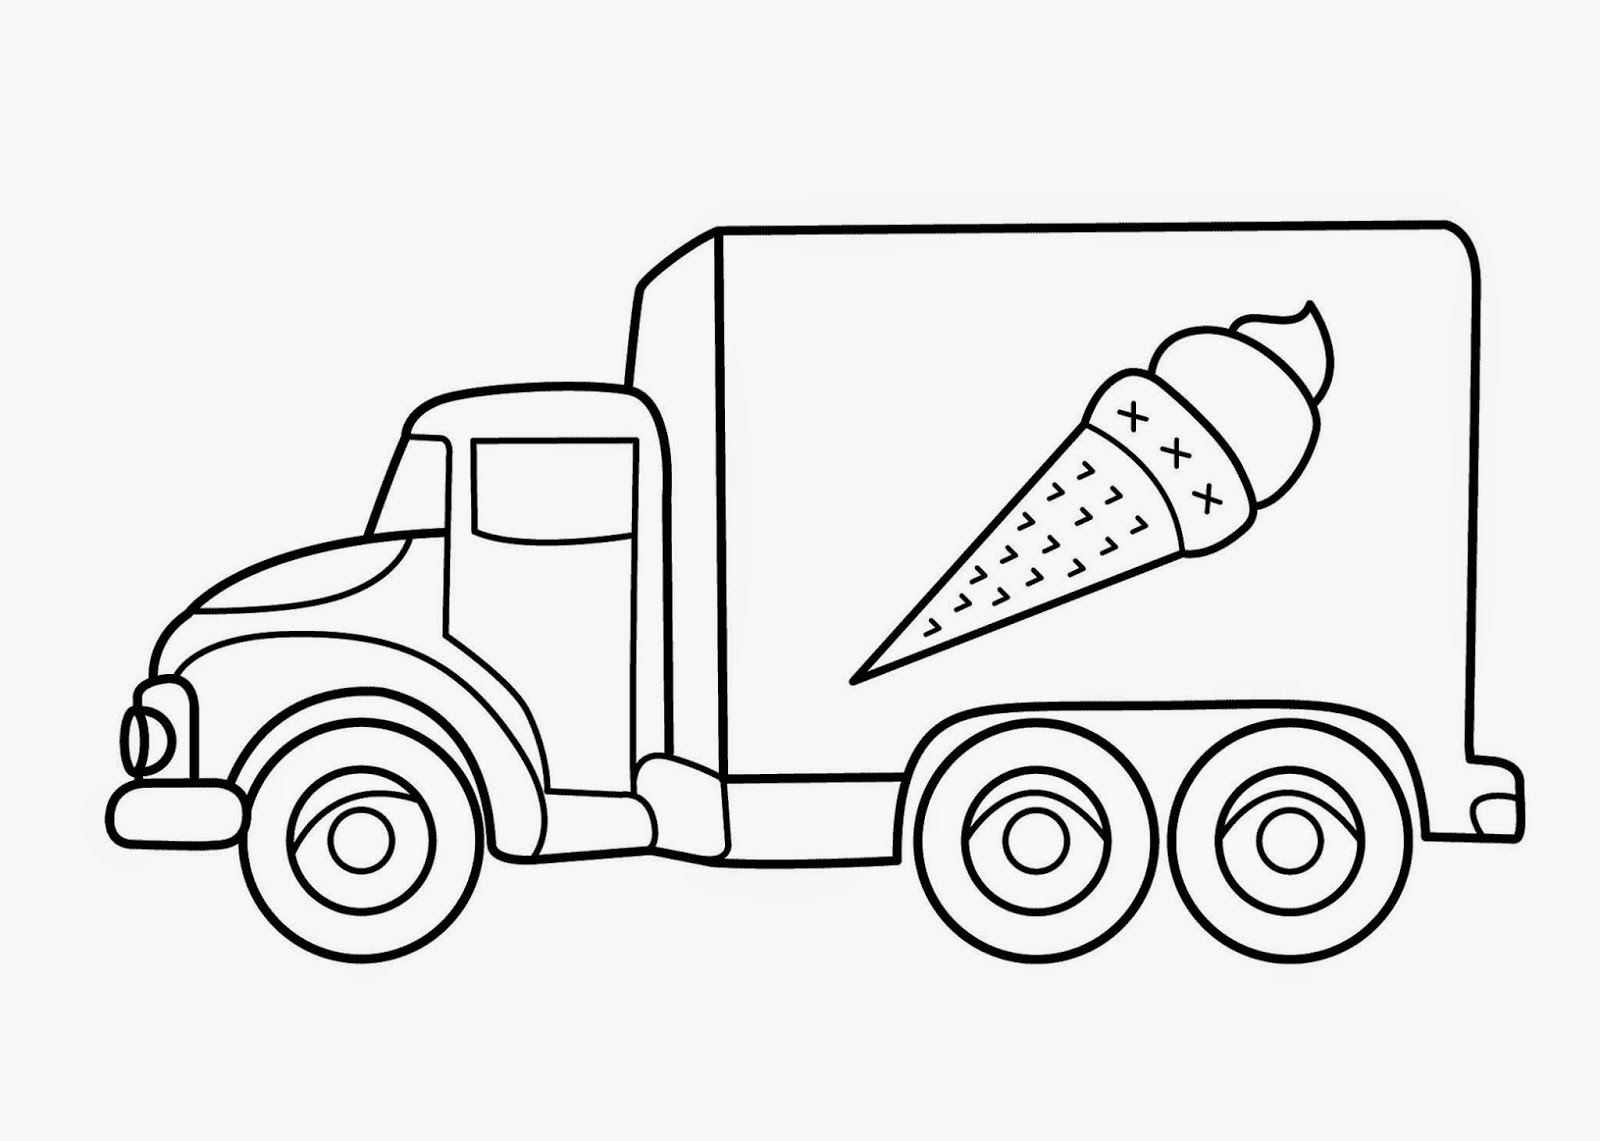 Kids Under 7 Vehicles Coloring Pages - Automobile-coloring-pages